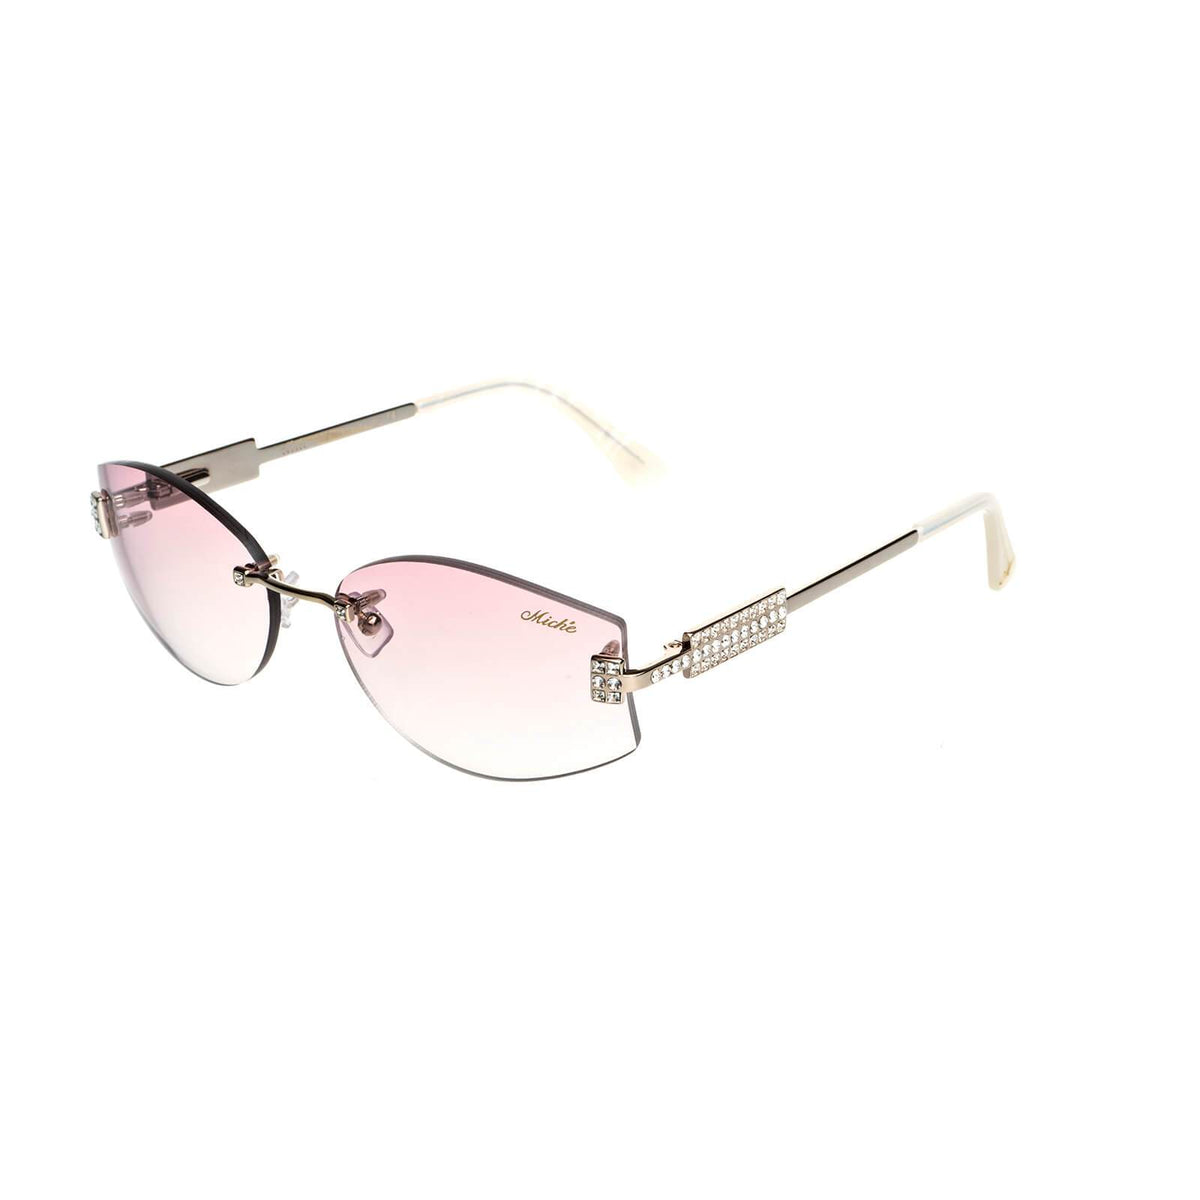 Miché Empress Sunglasses - Pink - Gold - White